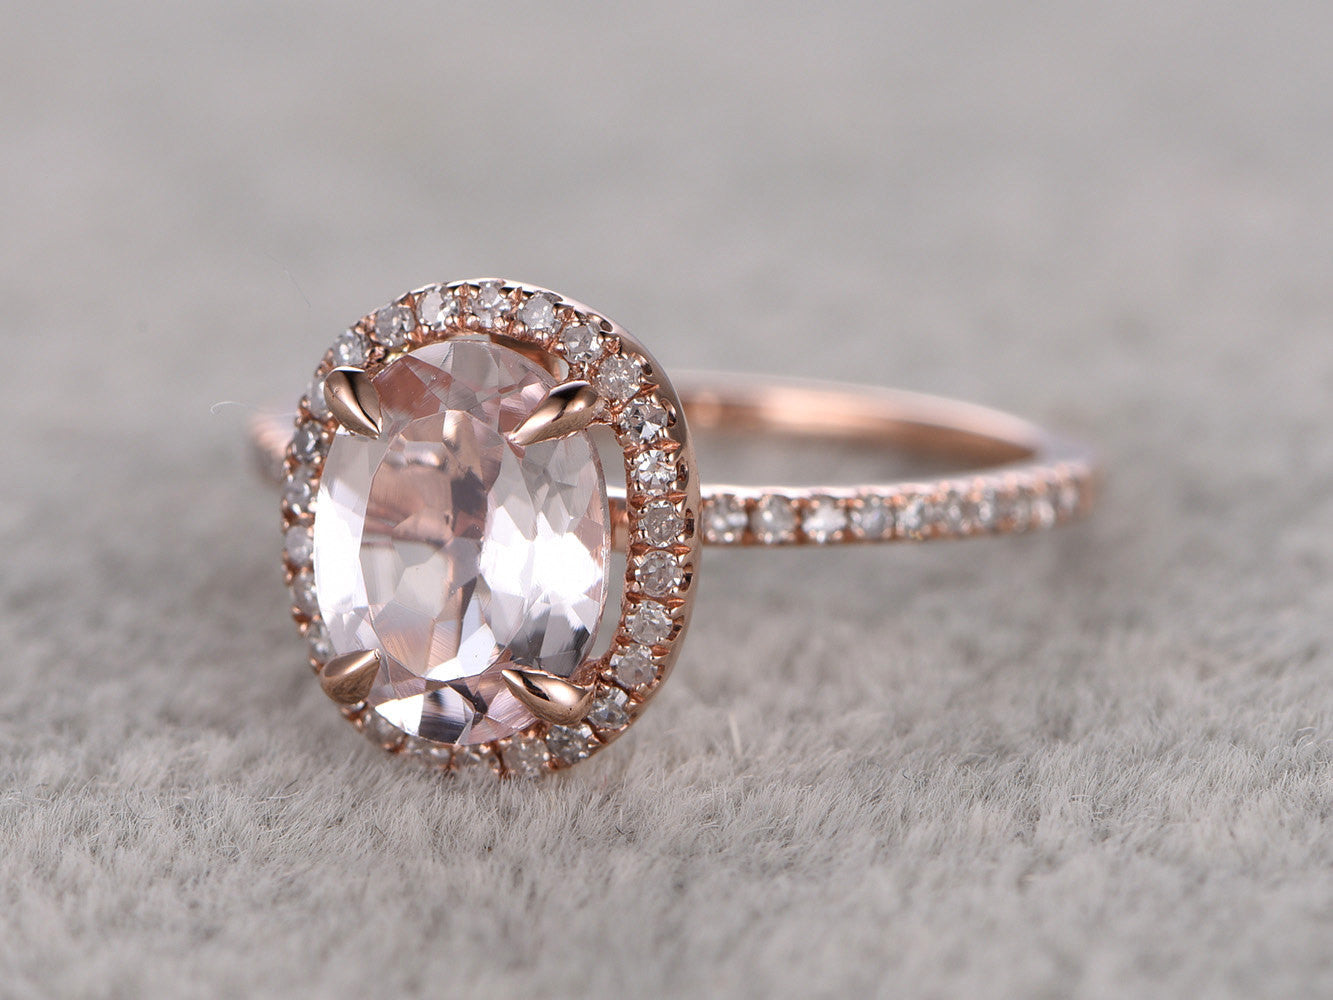 6x8mm Morganite Engagement ring Rose gold,Diamond wedding band,14k,Oval Cut,Gemstone Promise Bridal Ring,Claw Prongs,Halo Half Eternity